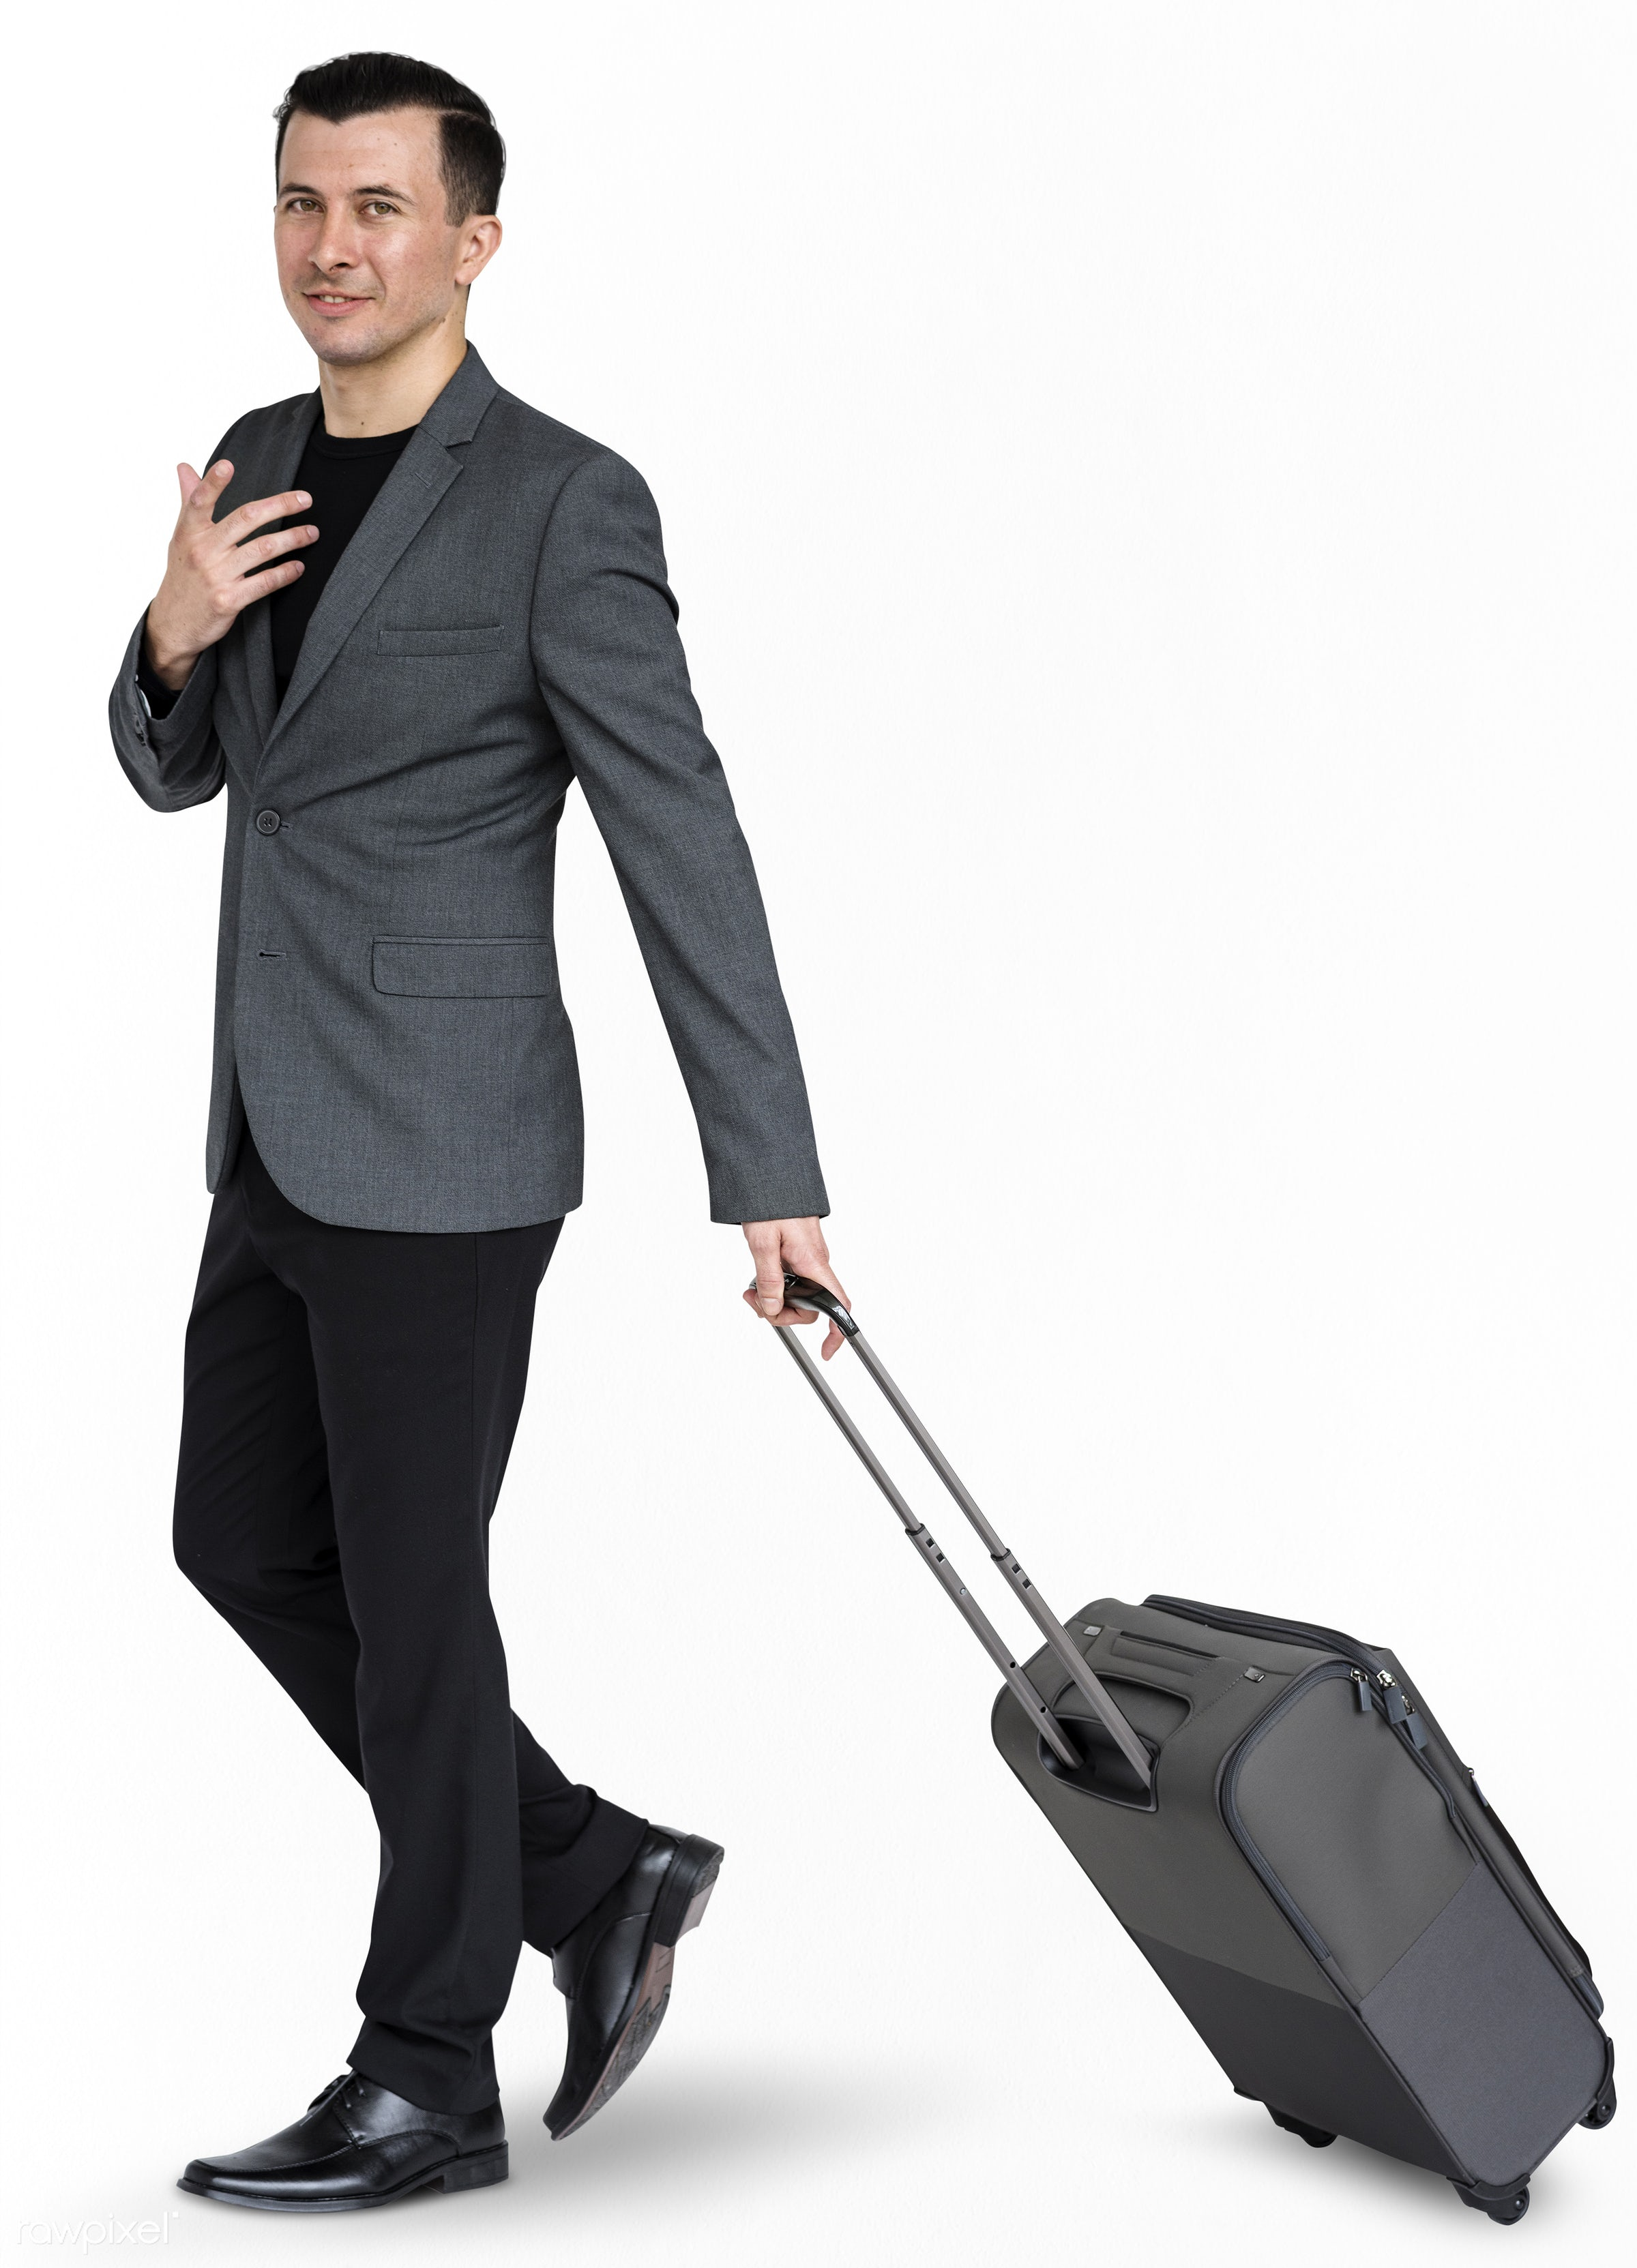 studio, face, person, isolated on white, joy, travel, people, business, businessman, happy, trip, smile, cheerful, man,...